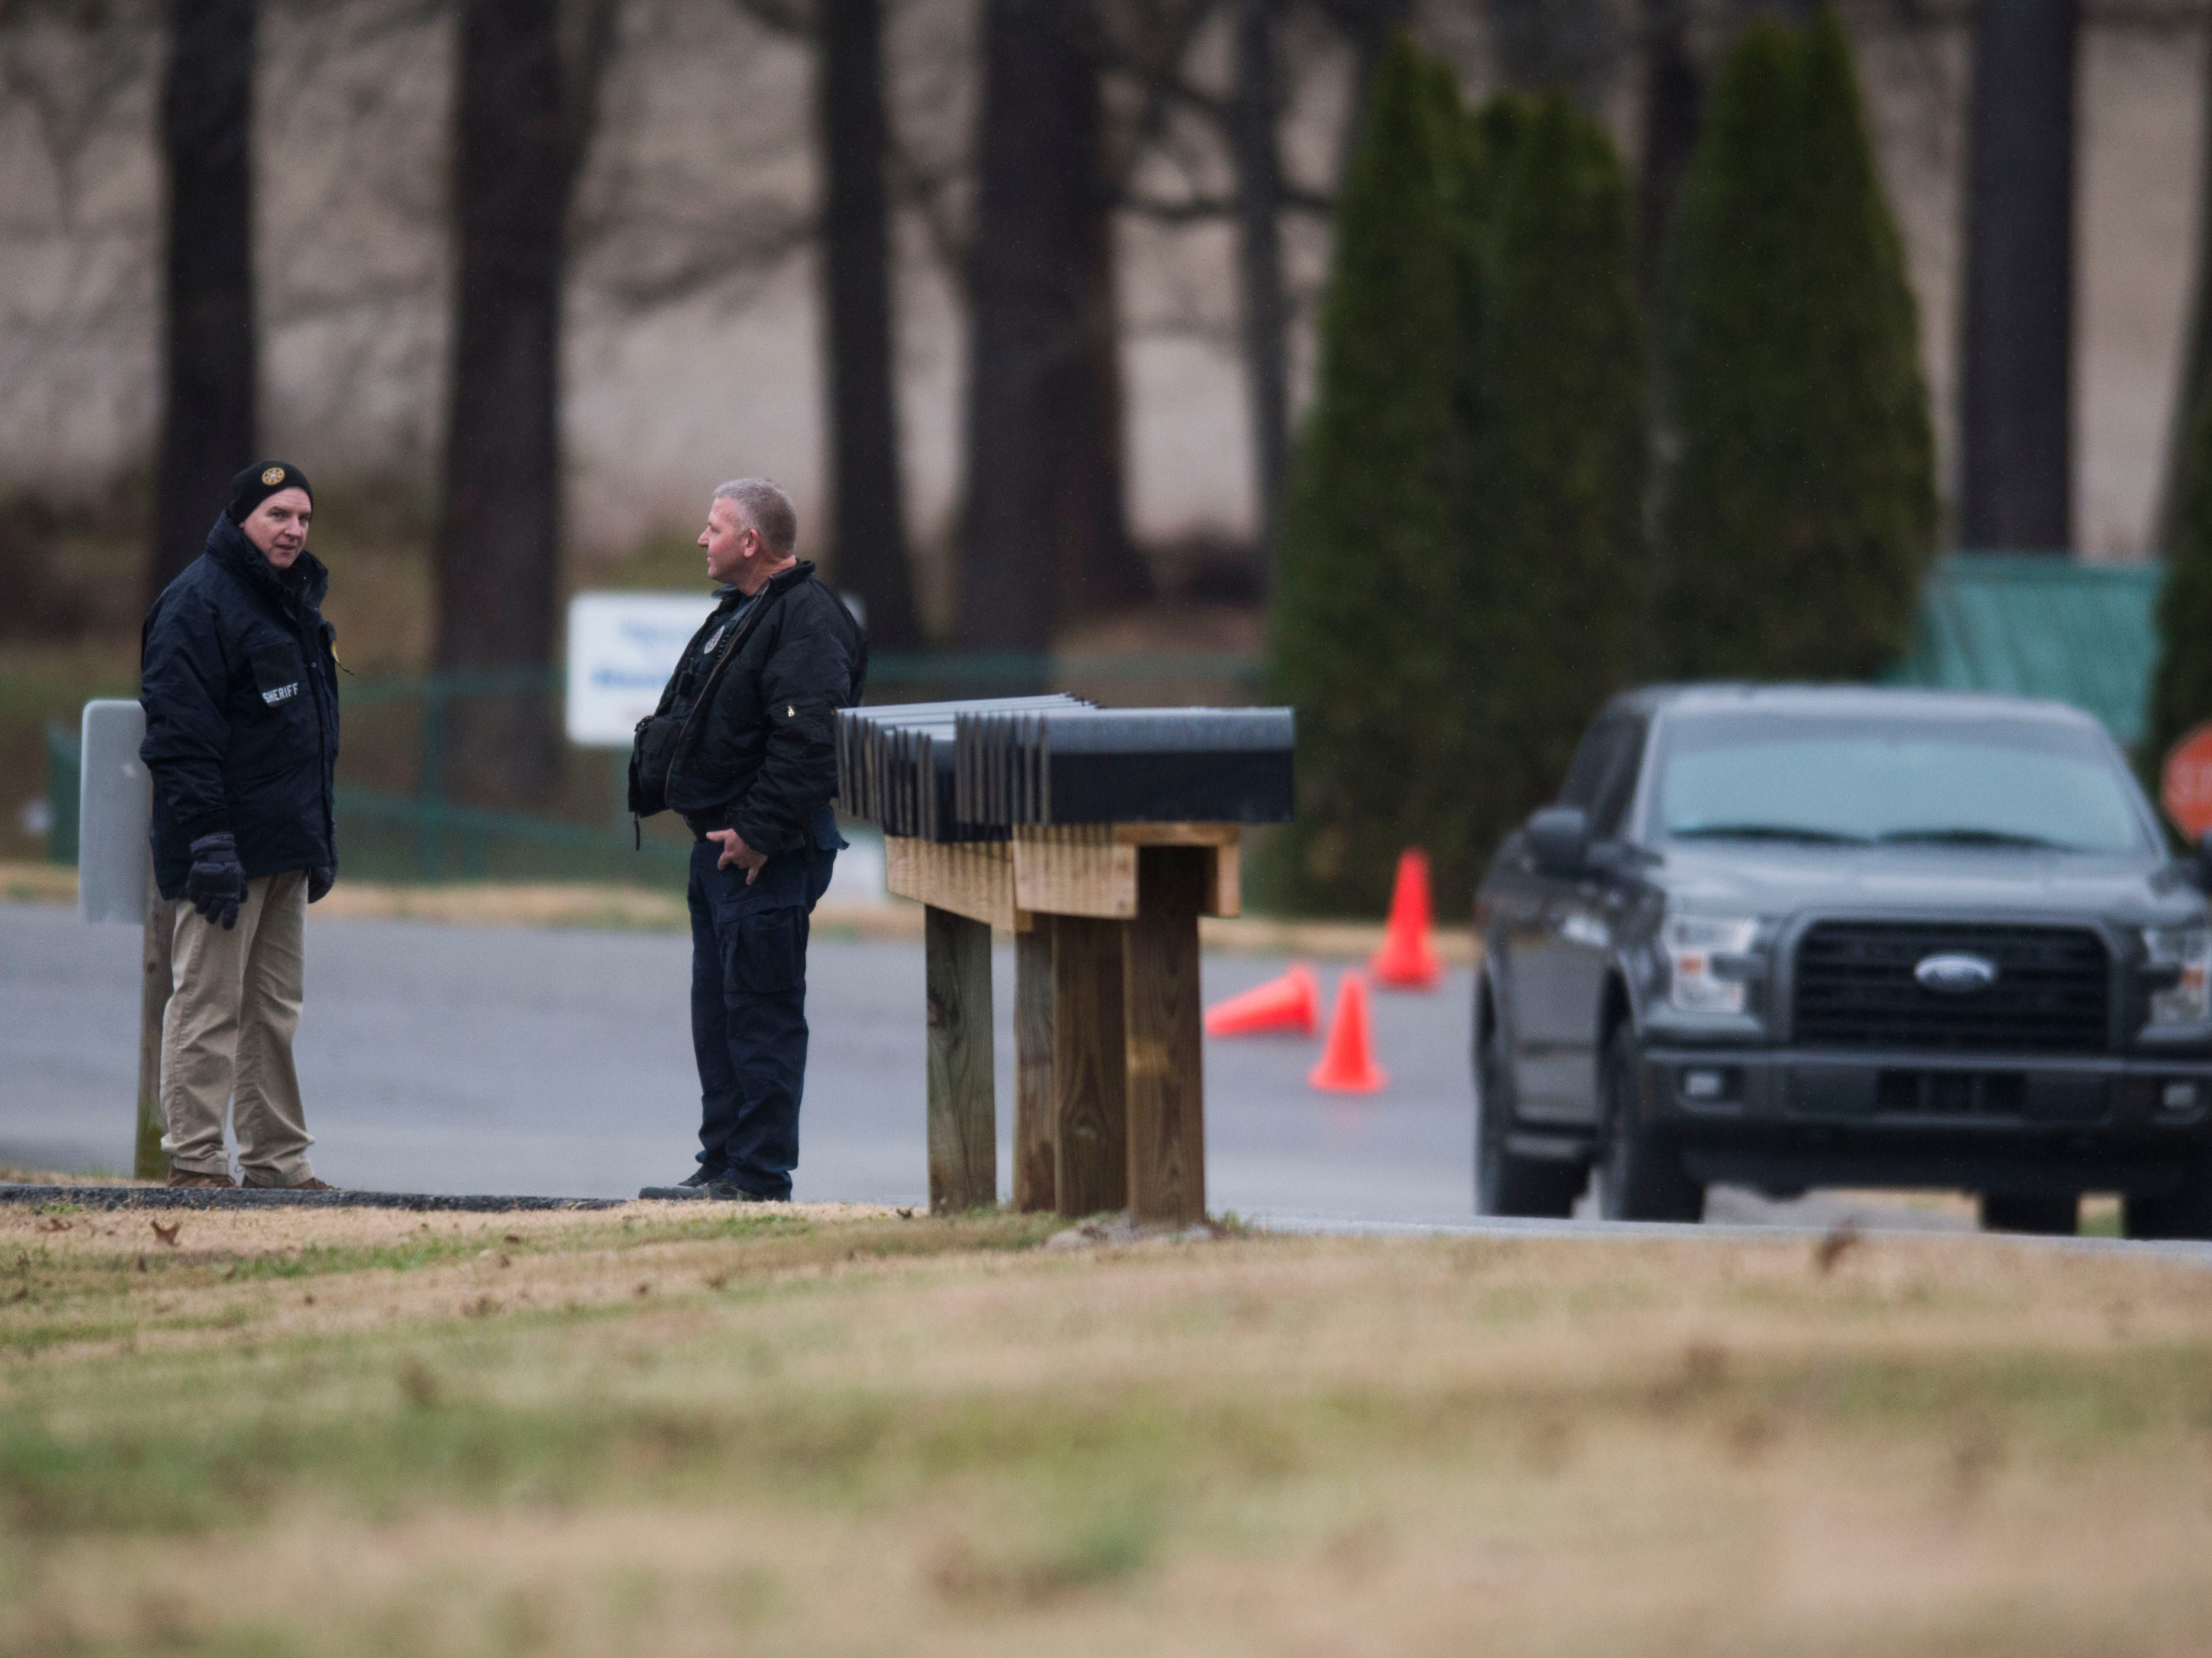 Blount County Sheriff's officers wait outside an apartment building during a standoff involving one person believed to be armed at Riverside Manor Apartments Saturday, Dec. 8, 2018.